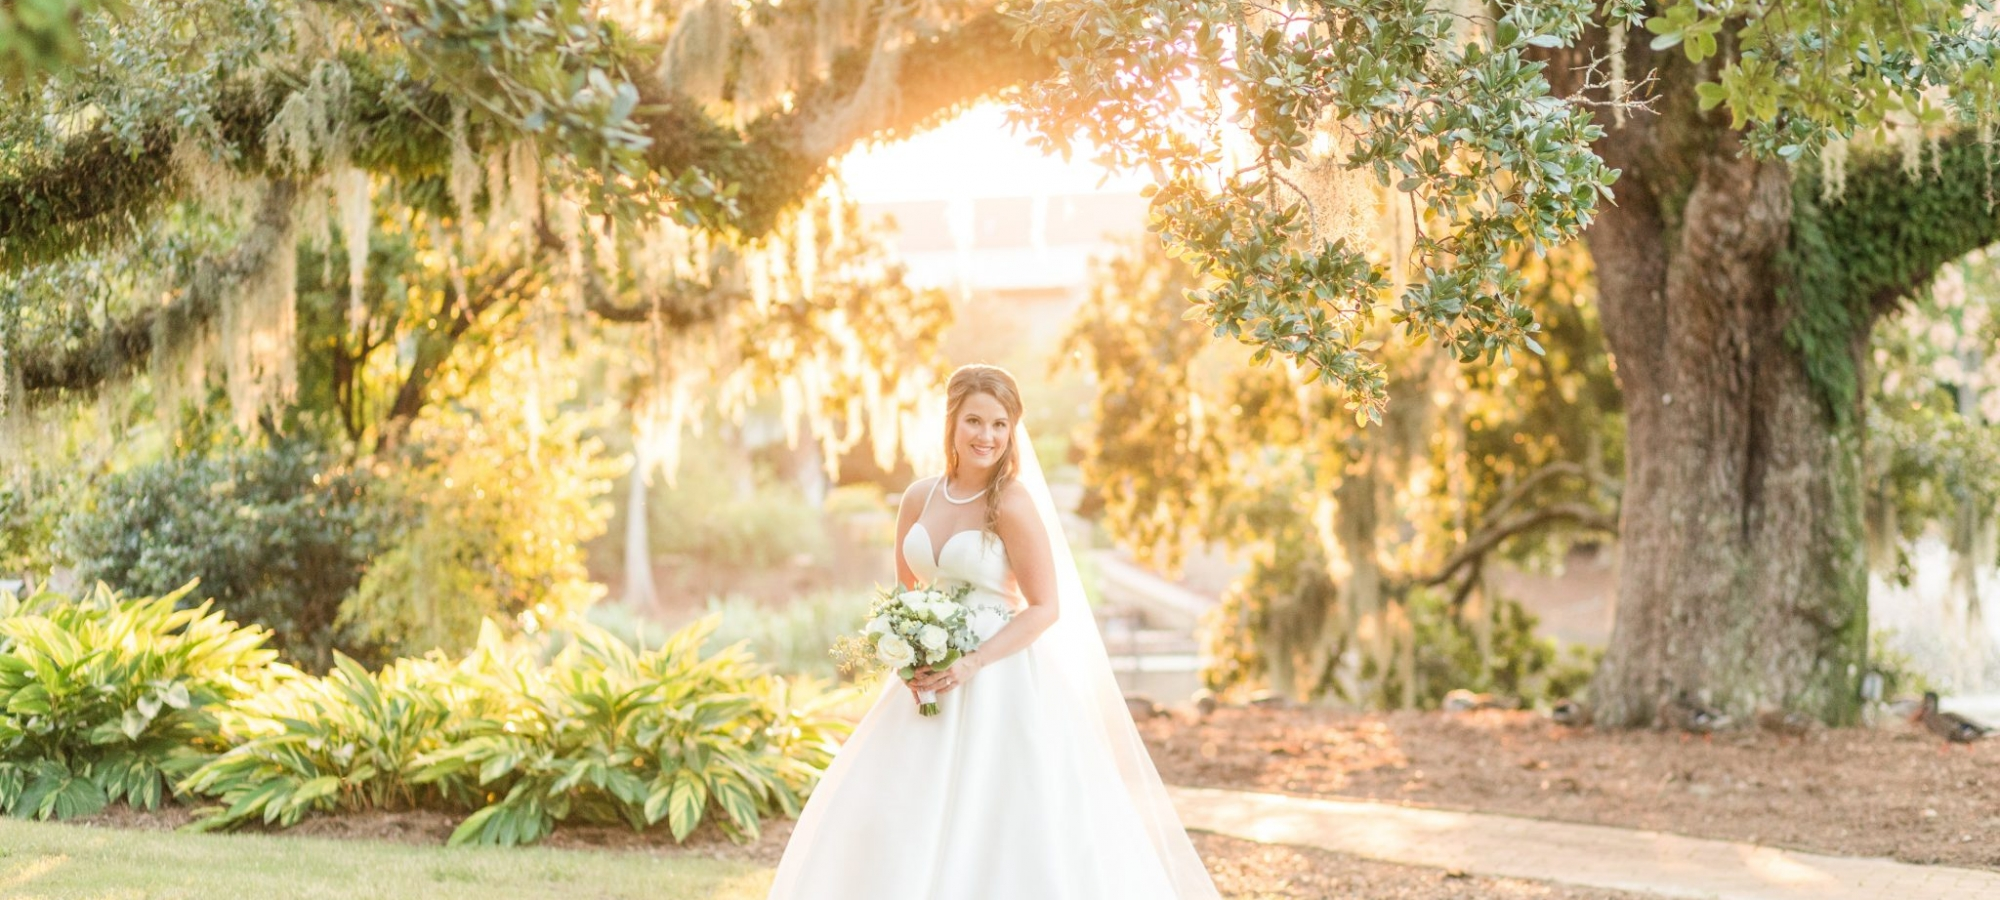 The Grand Hotell Mariot – Point Clear Alabama- Bridal Session – Anna FIlly Photography – Cristen-15